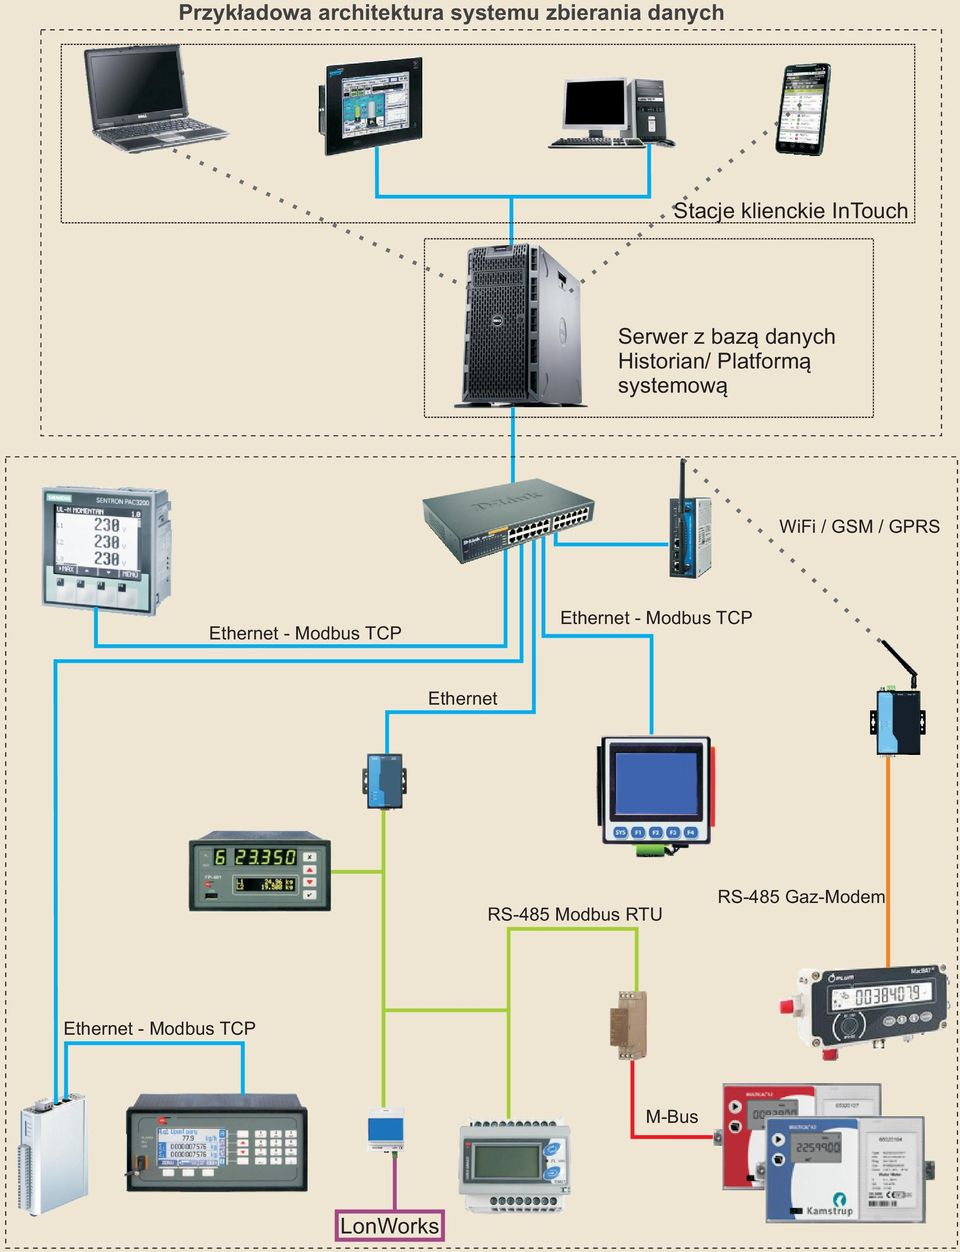 GSM / GPRS Ethernet - Modbus TCP Ethernet - Modbus TCP Ethernet